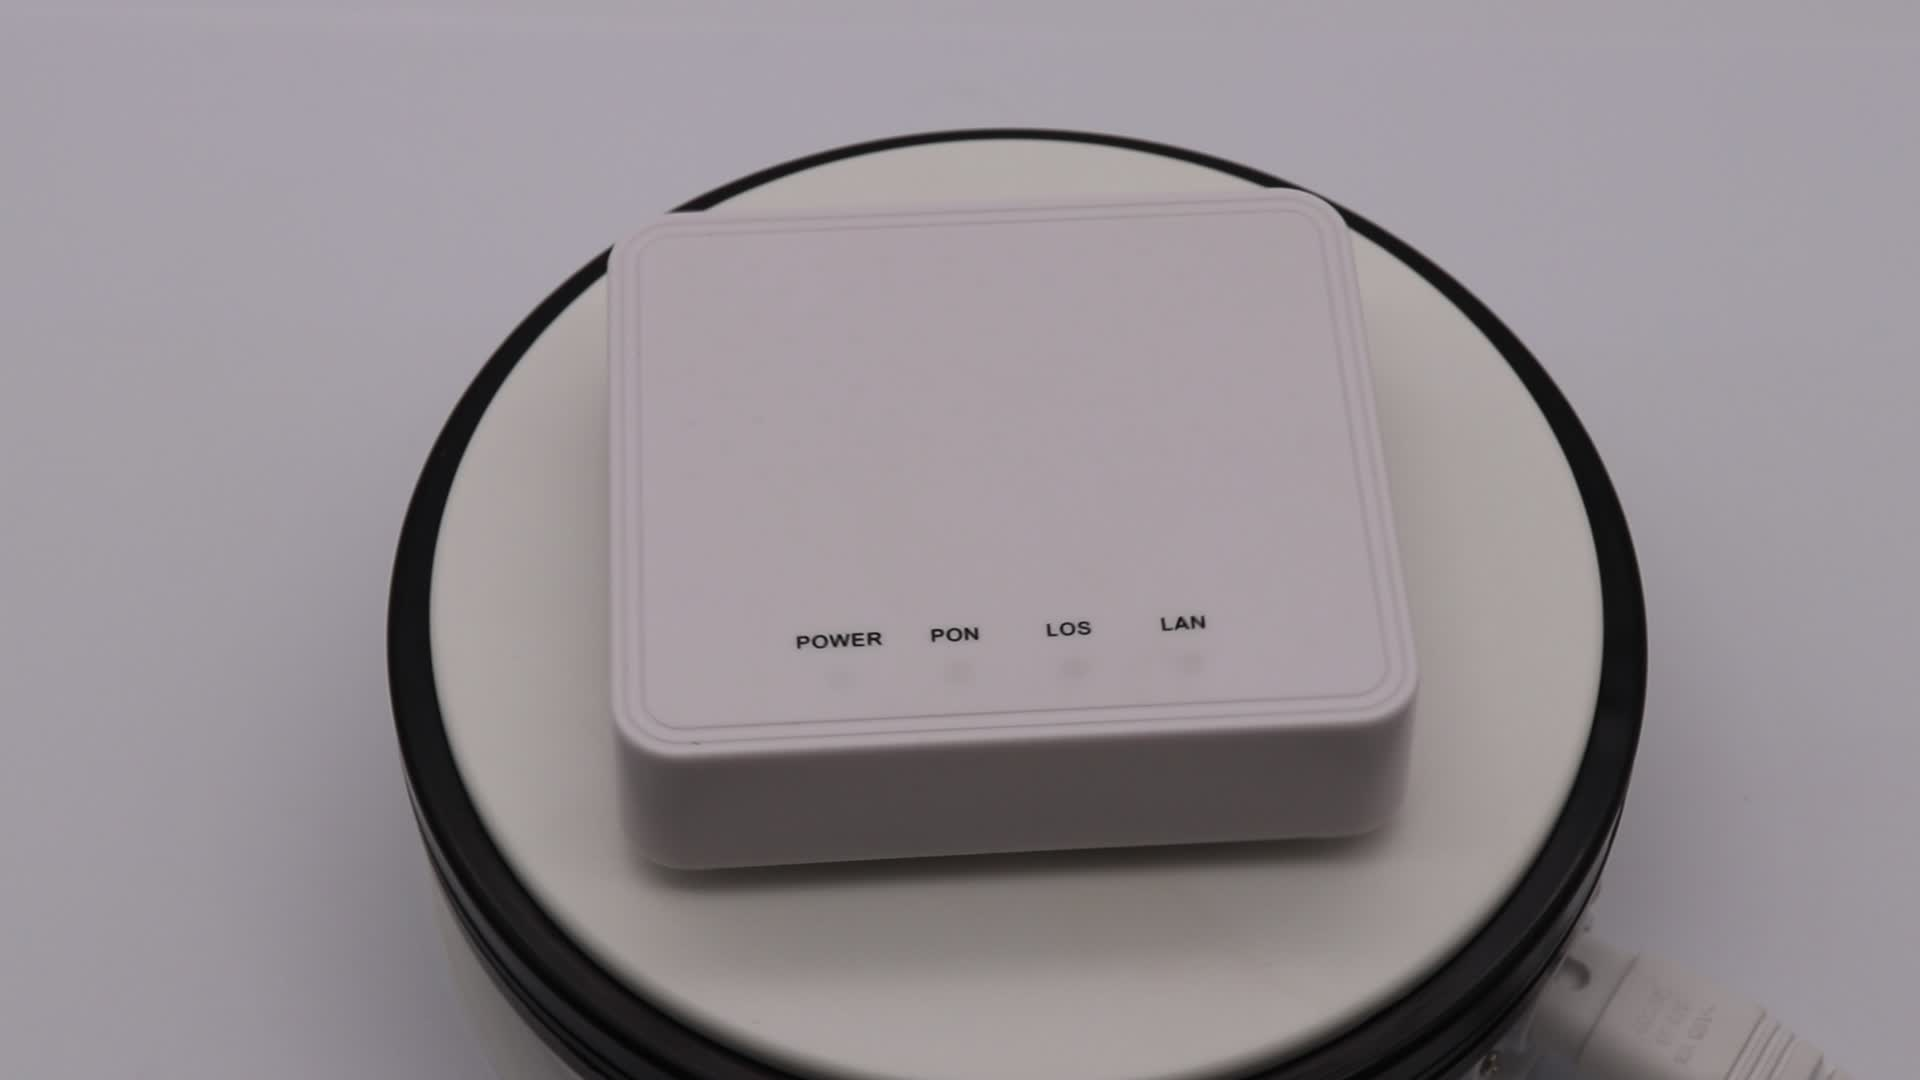 AOSHI factory directly sale ont gpon 1GE fiber optic modems and networking